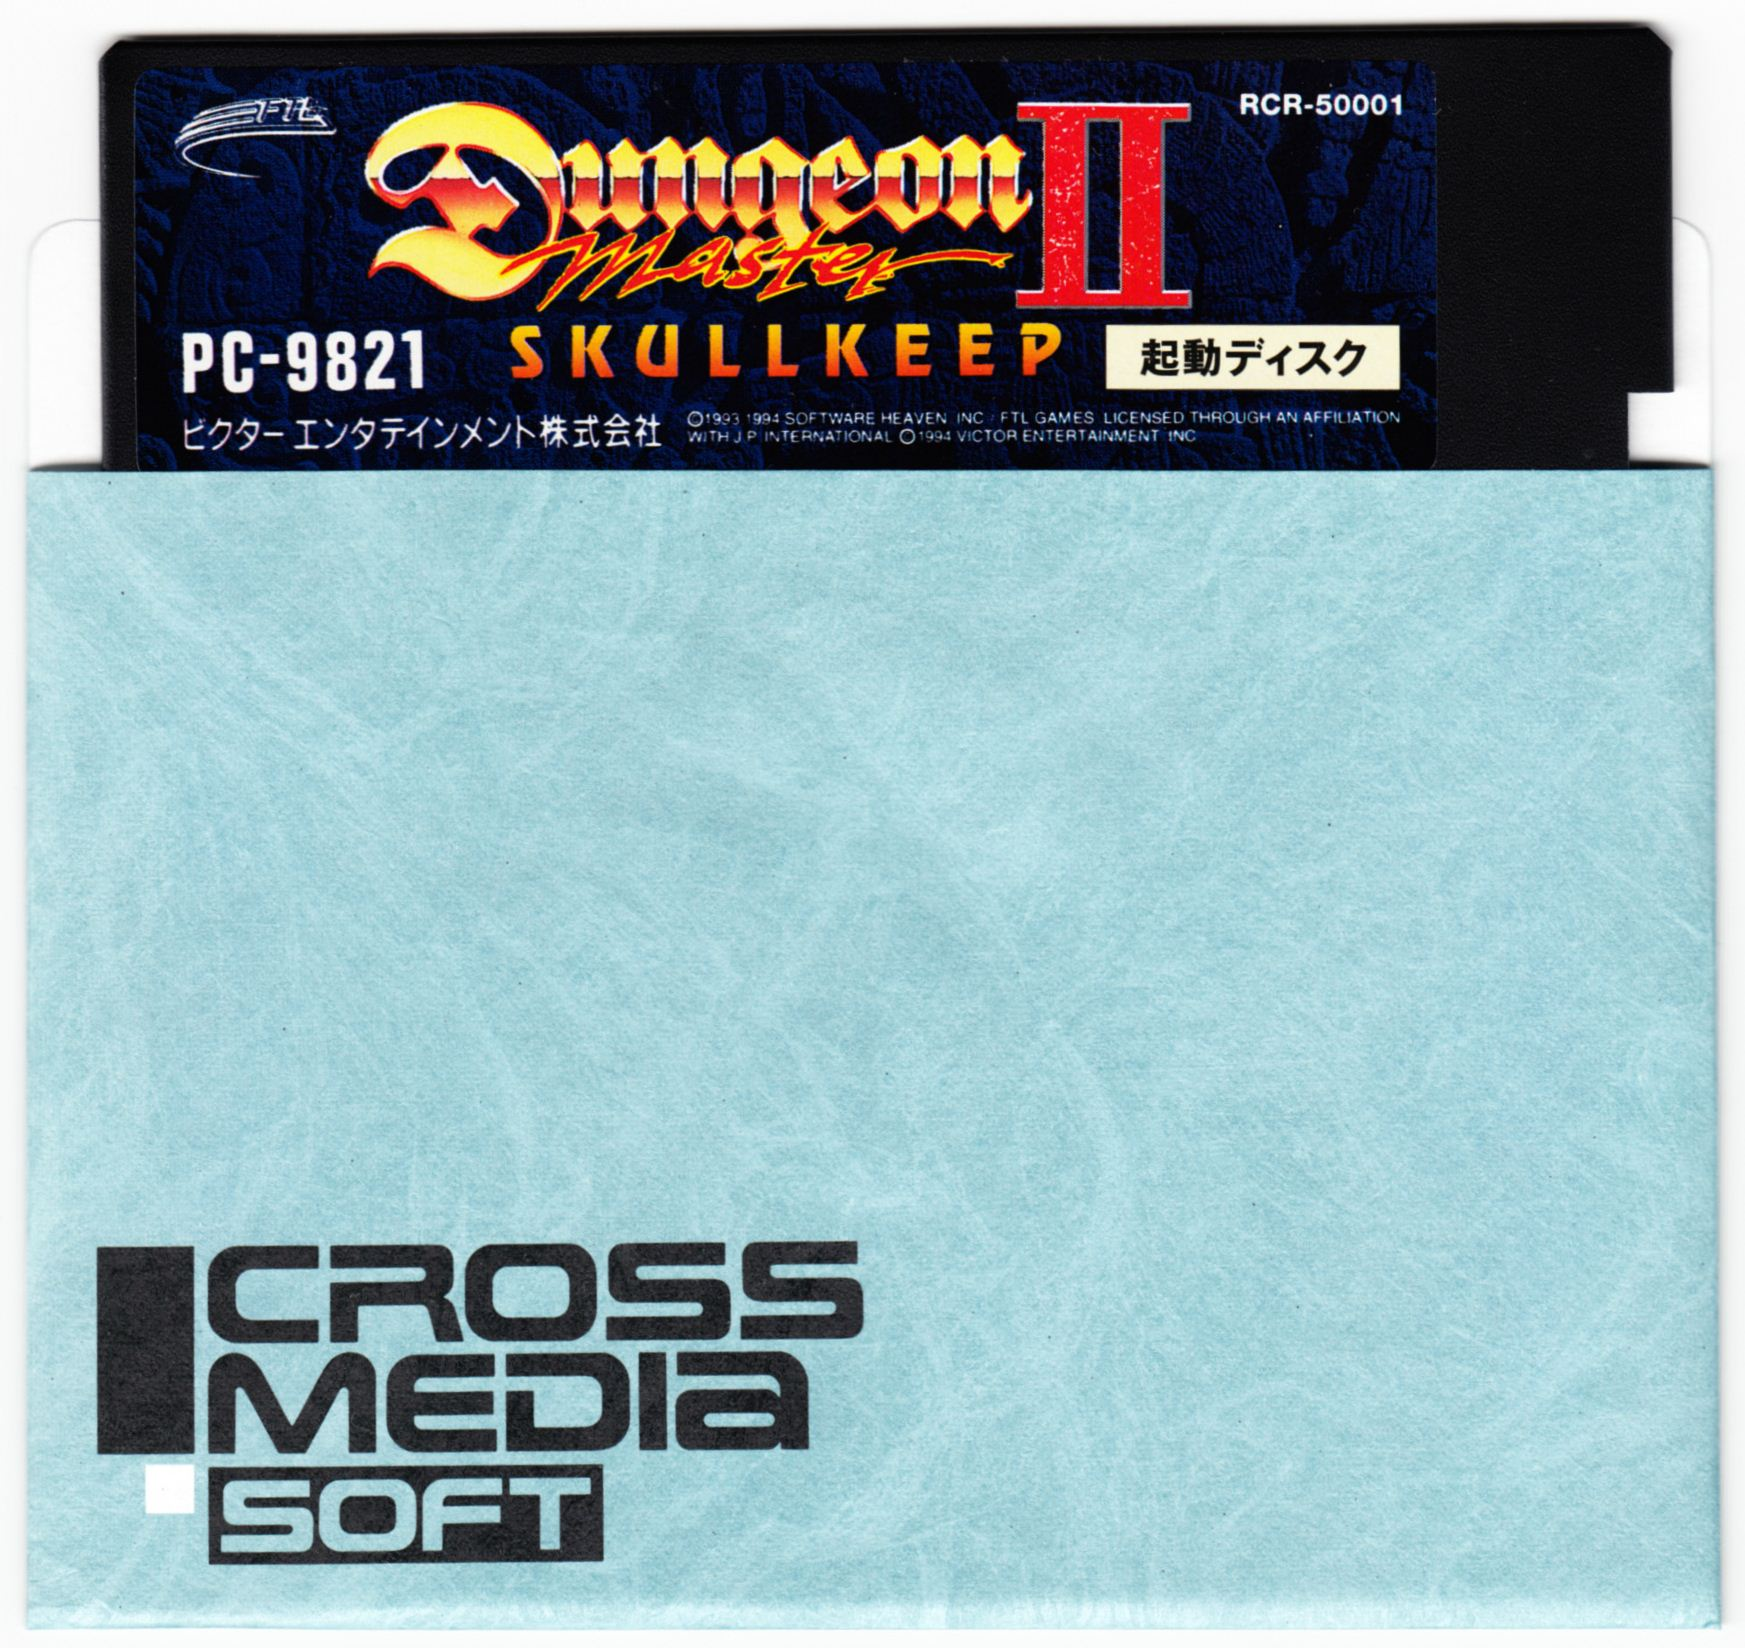 Game - Dungeon Master II - JP - PC-9821 - Startup Disk In Sleeve - Front - Scan